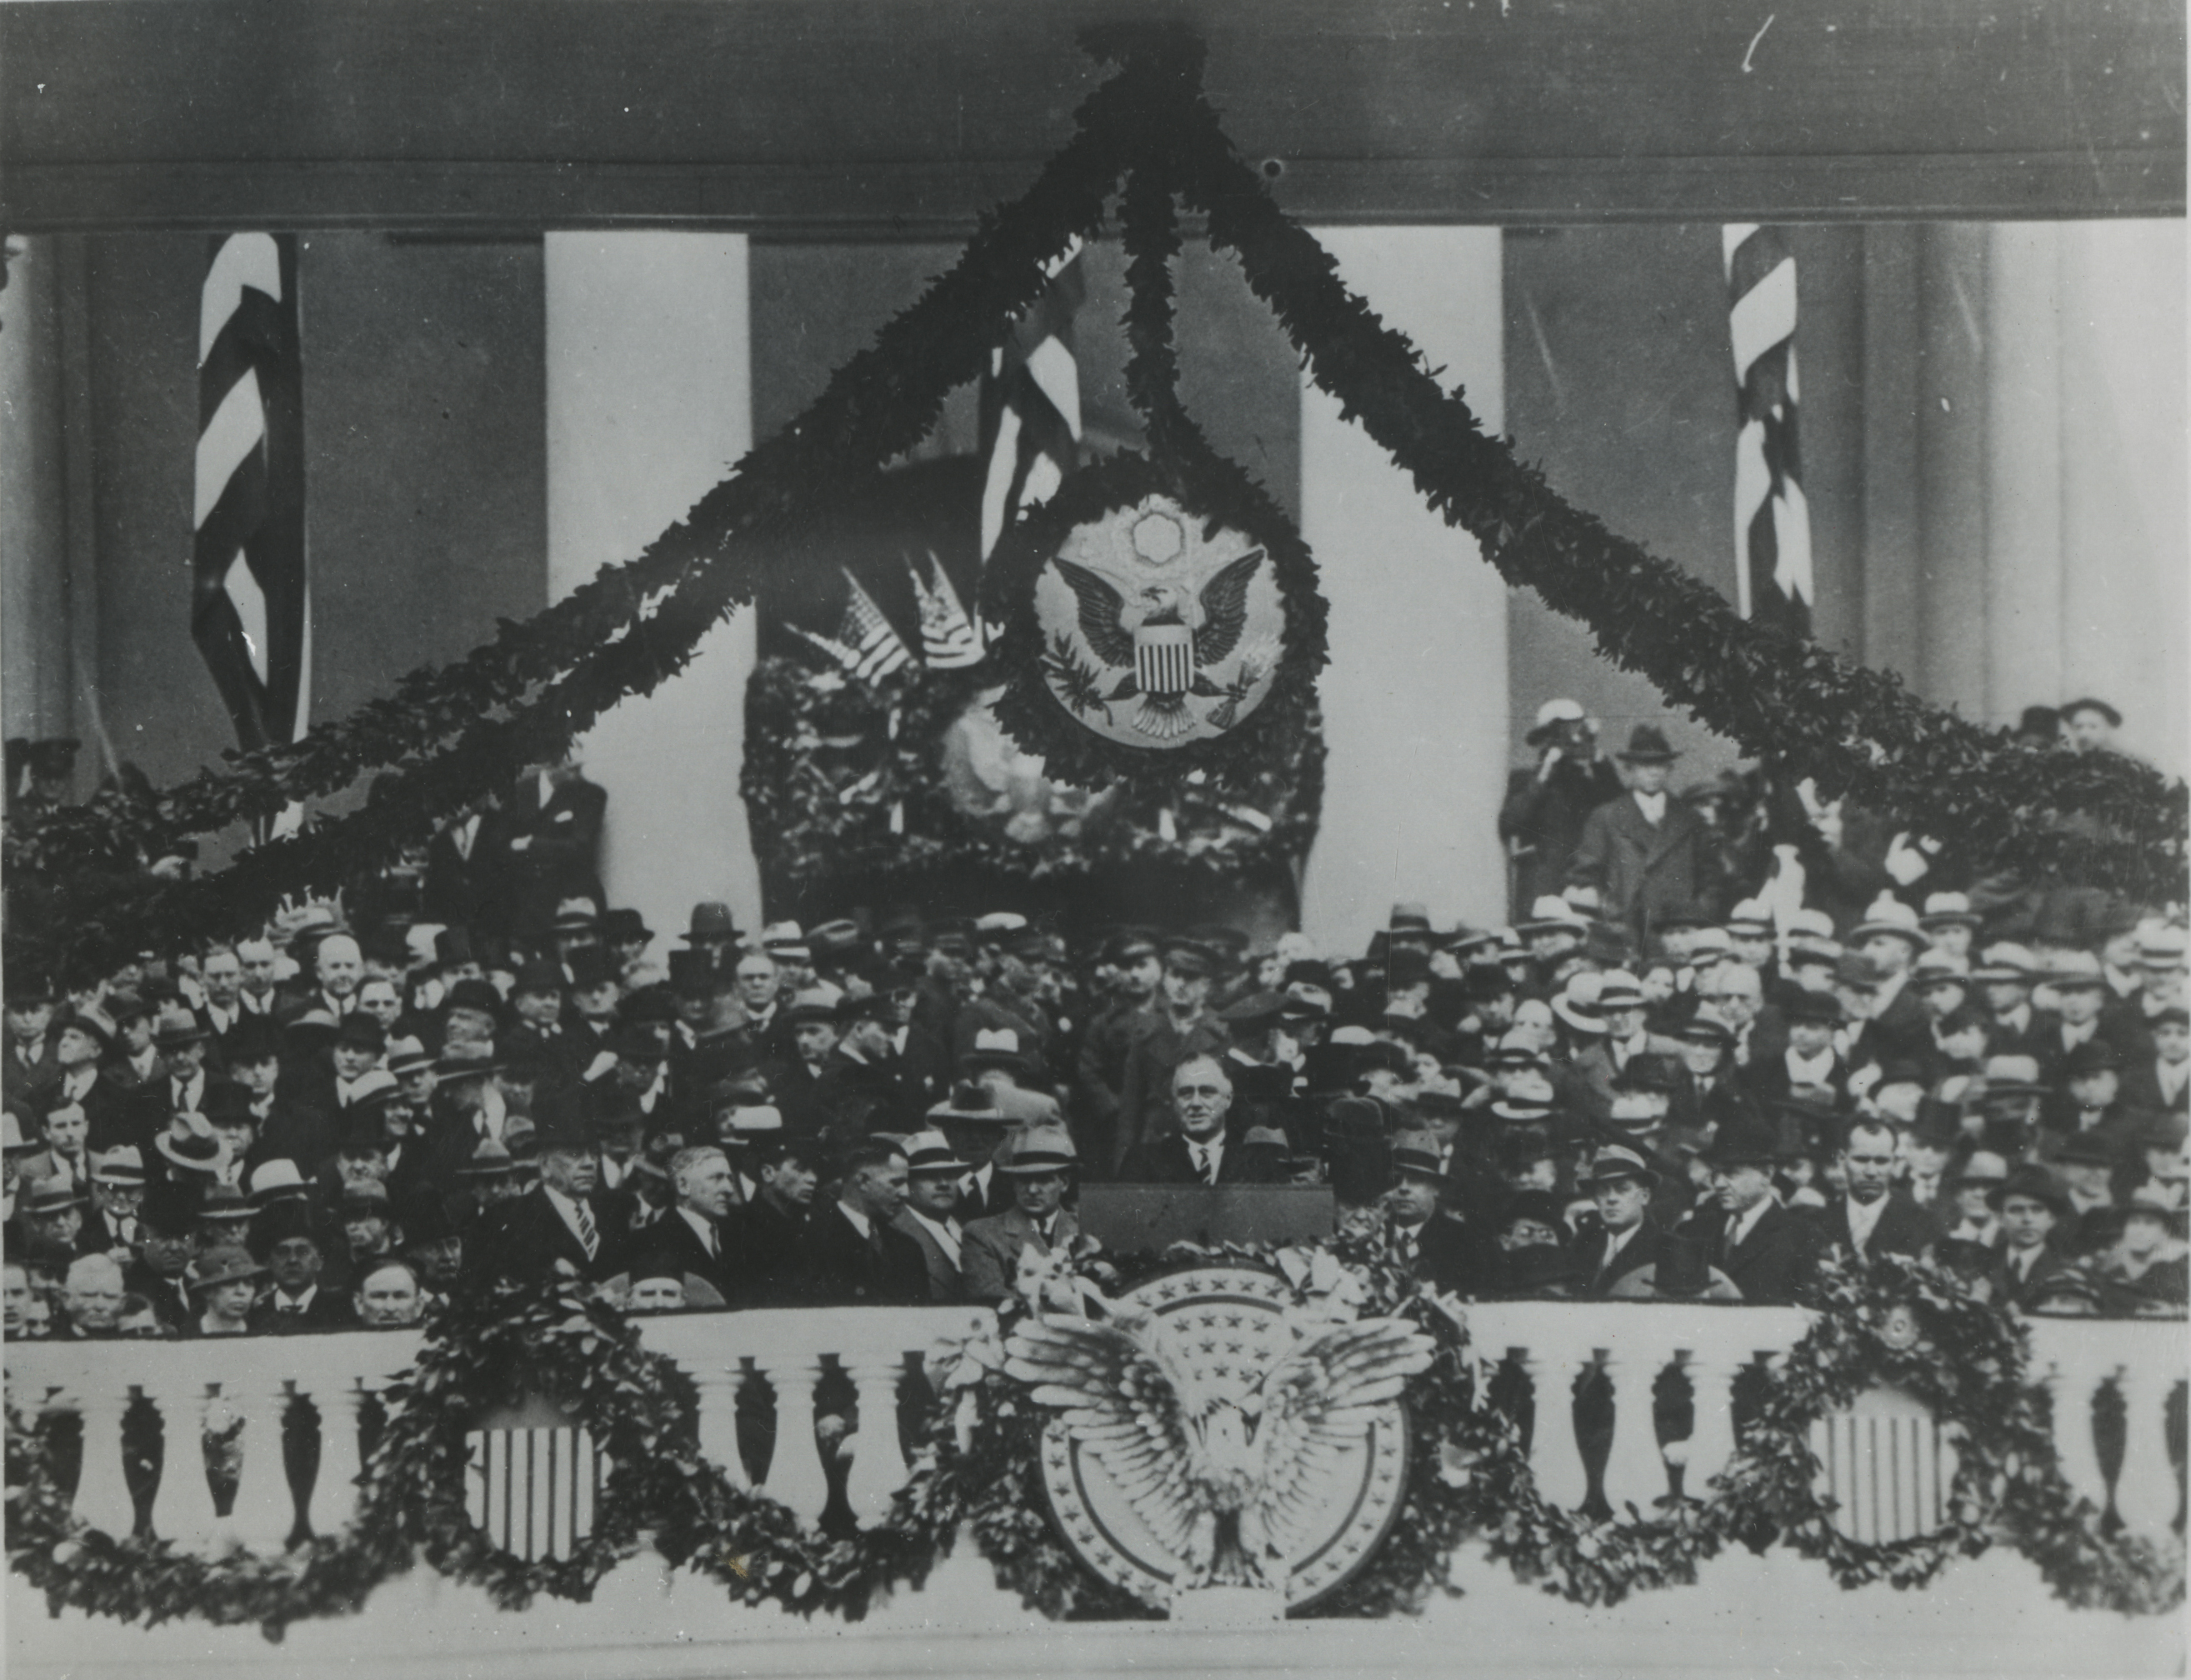 Franklin Delano Roosevelt is inaugurated as the 32nd President of the United States at the U.S. Capitol in Washington, D.C., March 3, 1933.